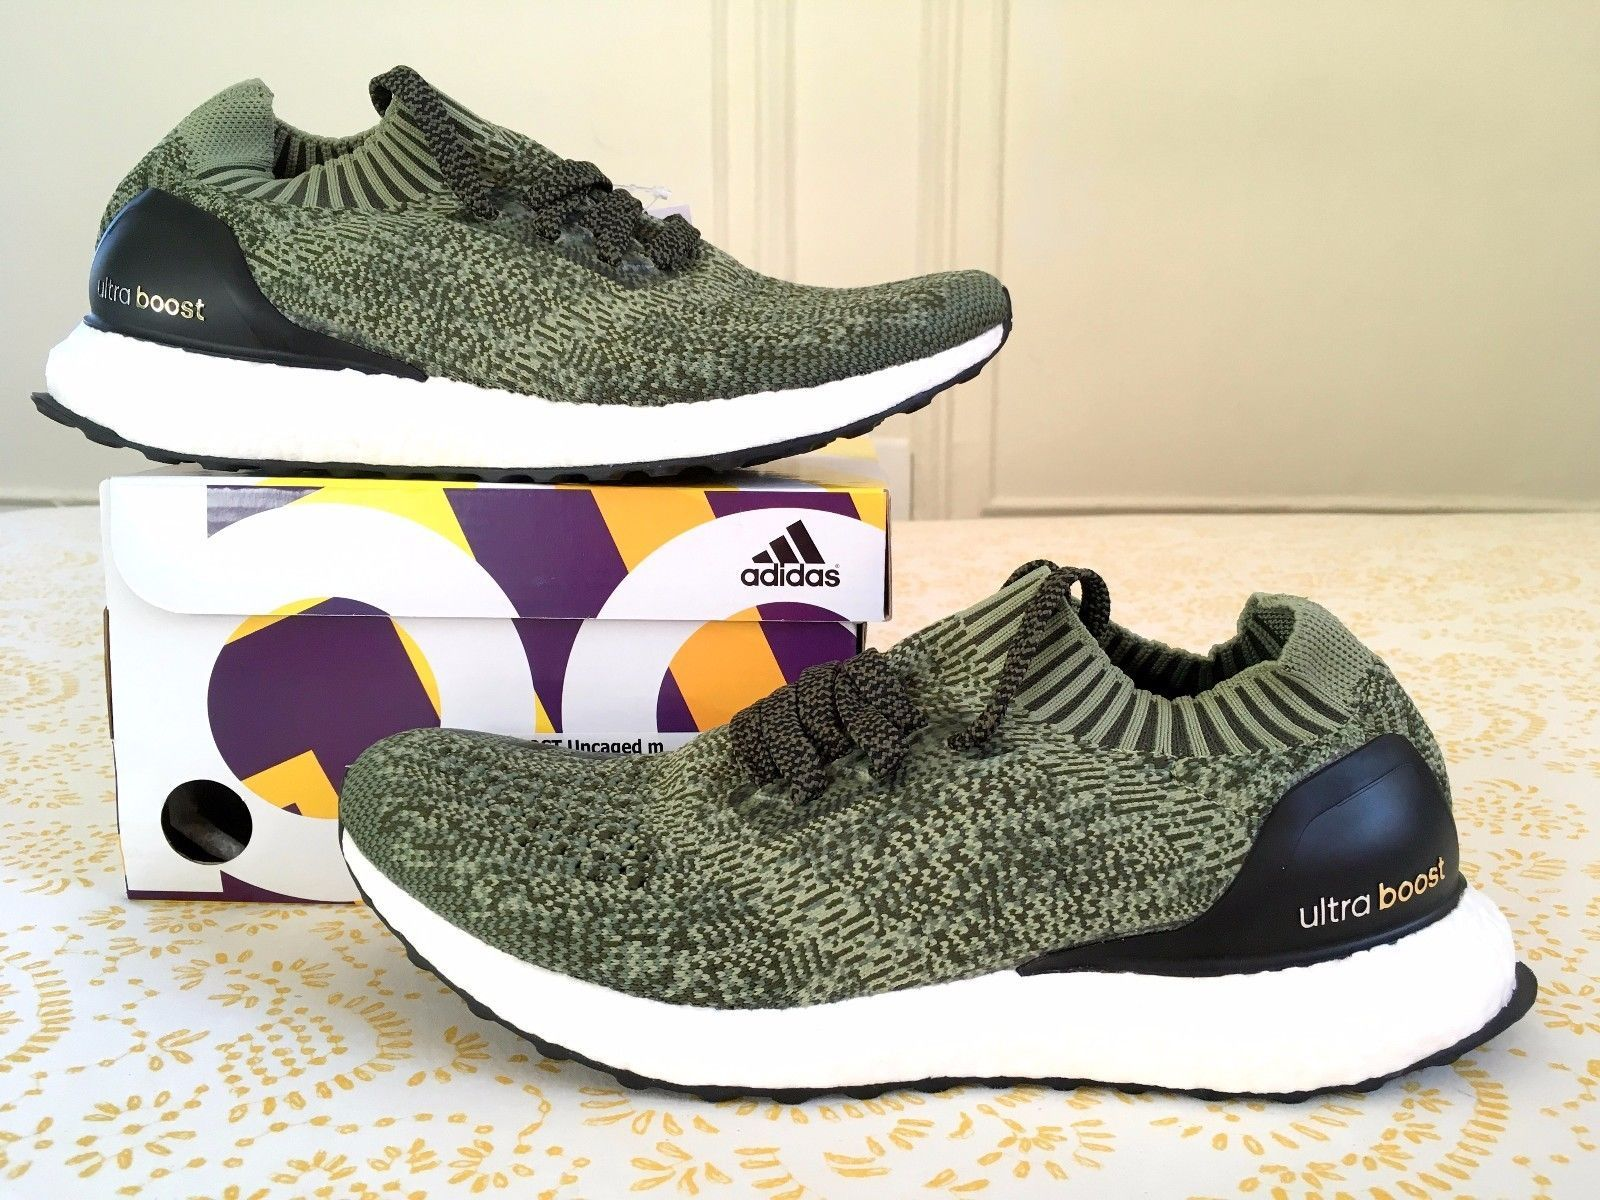 Adidas Ultra Boost Uncaged M - Olive - Men's Size 7 US - NEW BB3901 Green